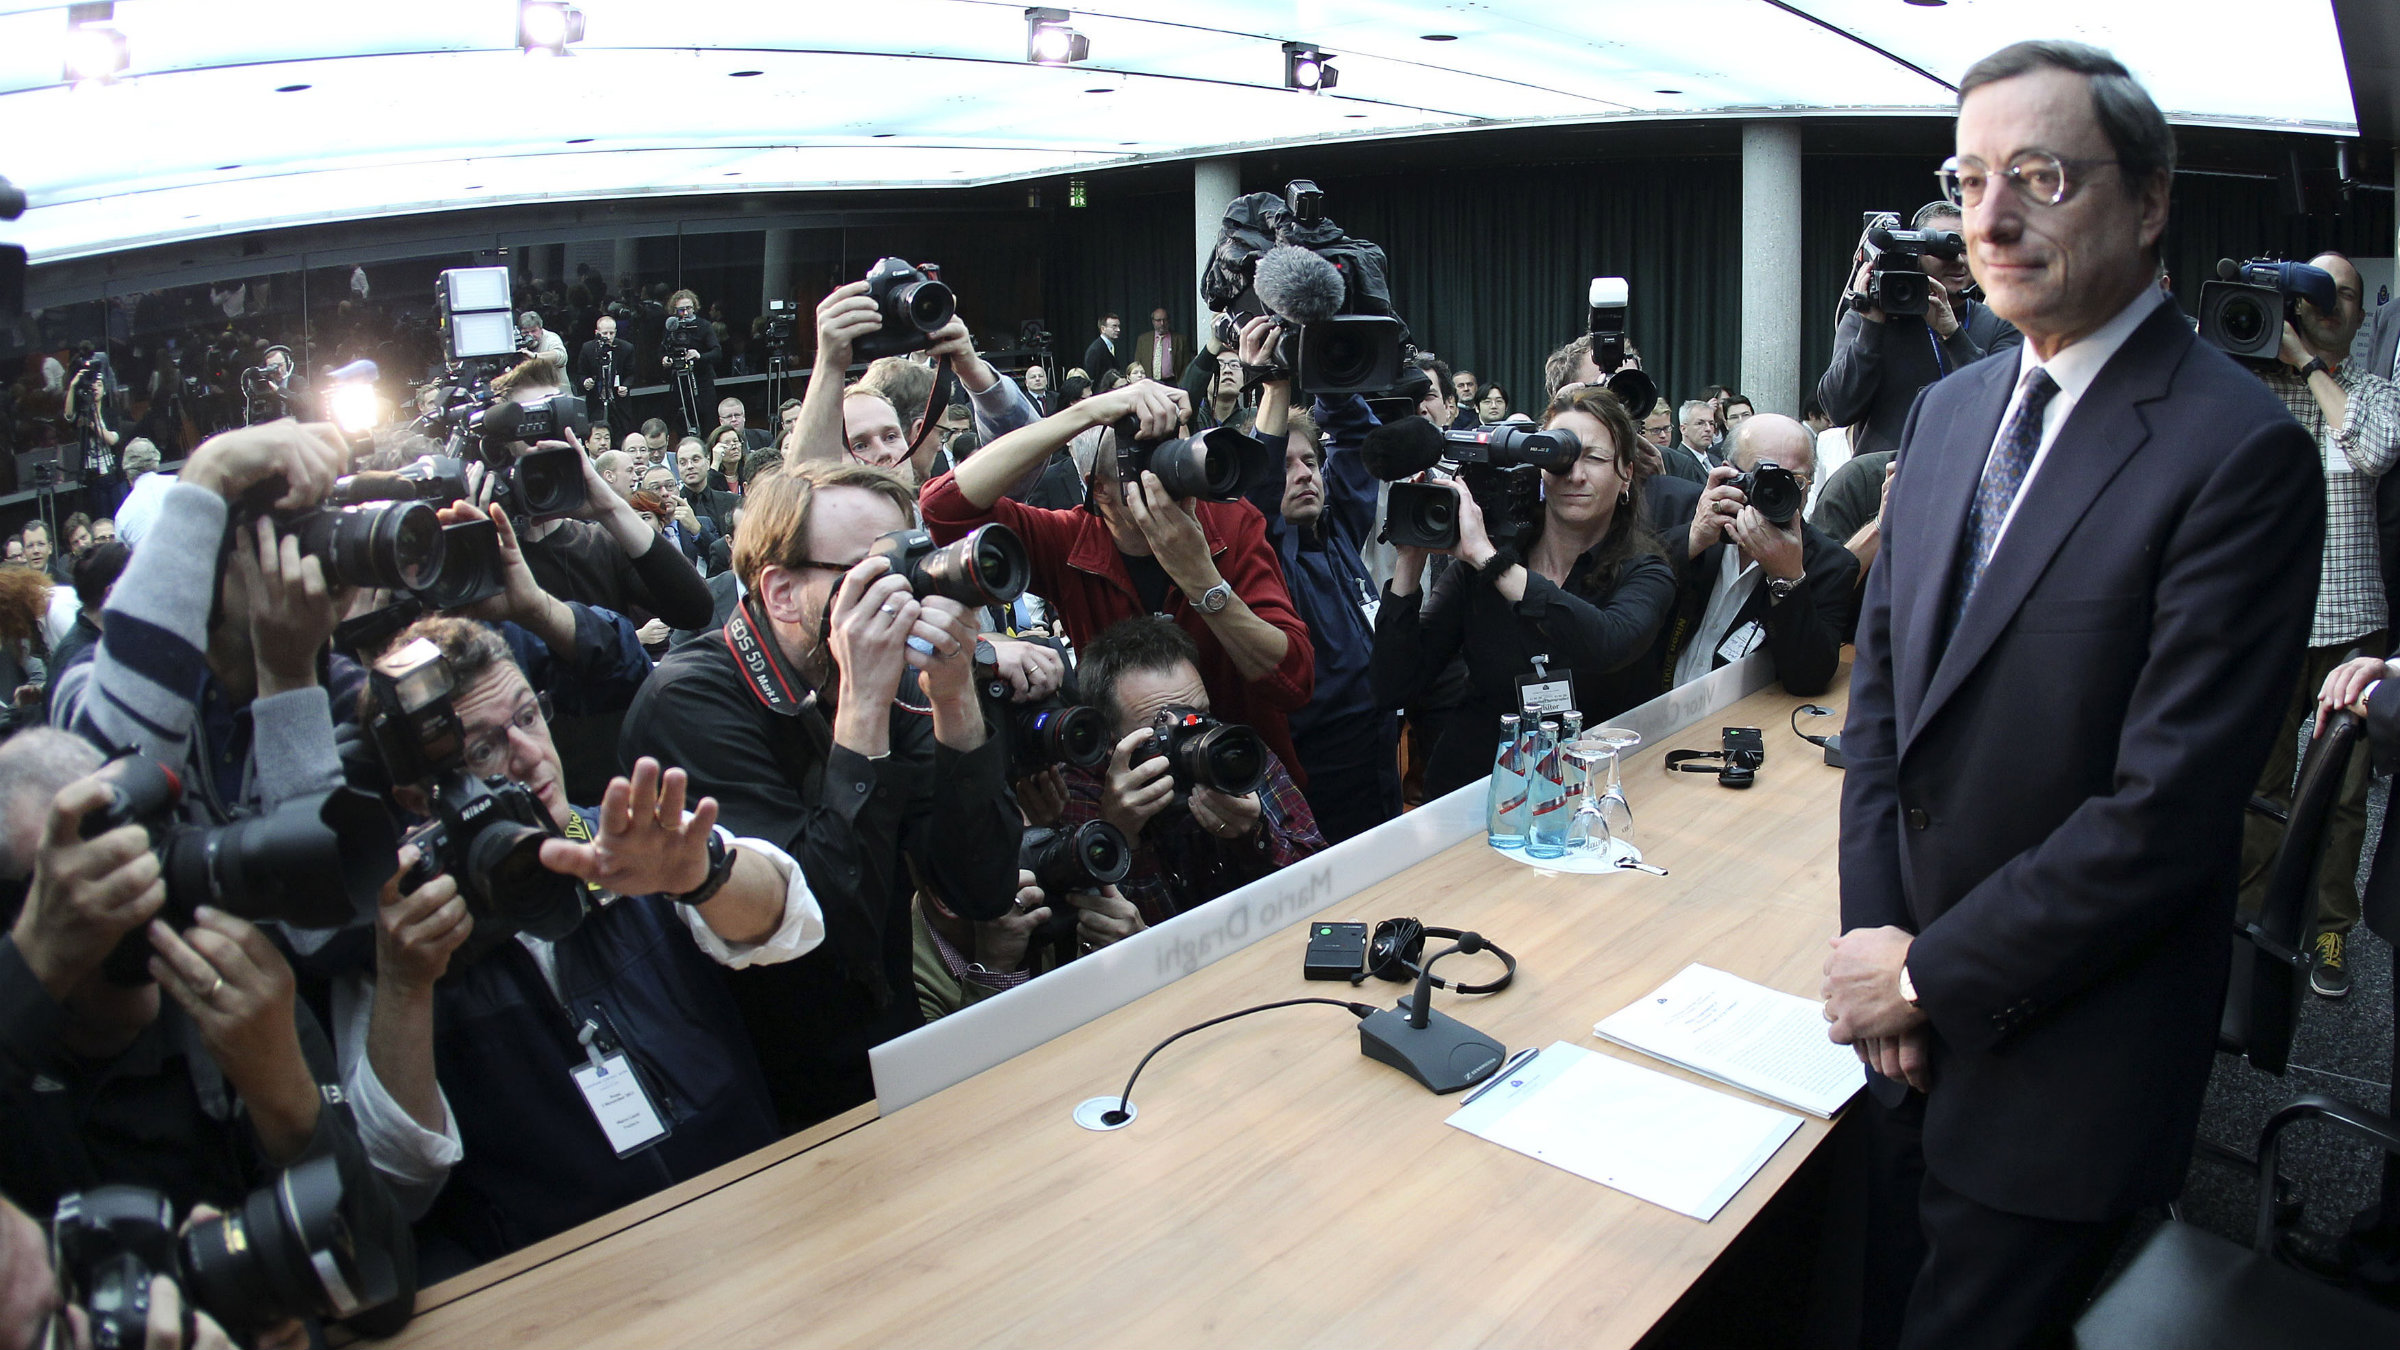 Mario Draghi, President of the European Central Bank, is surrounded by photographers prior to a press conference in Frankfurt.